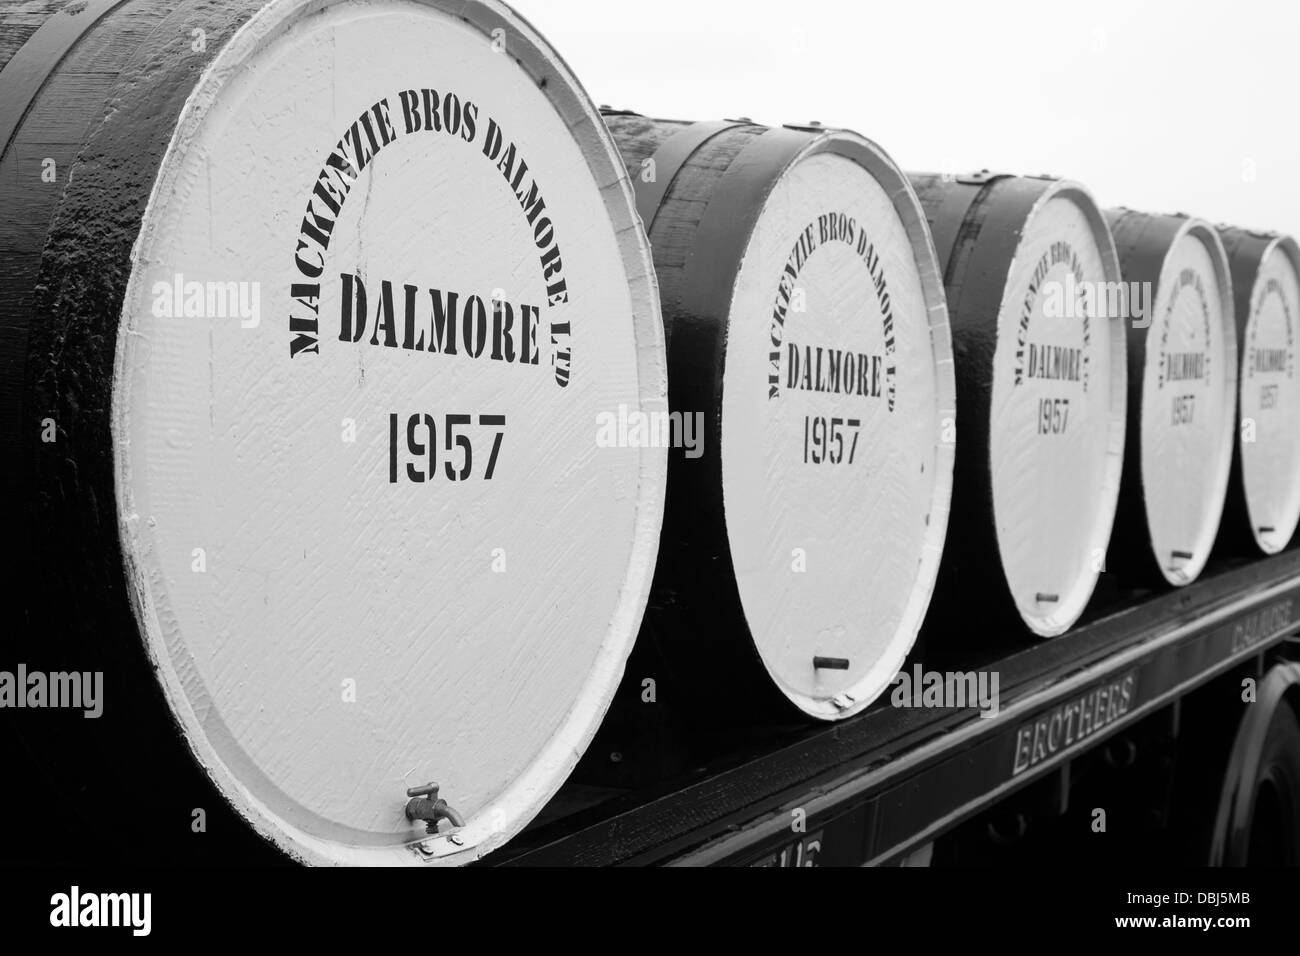 Large whisky casks or barrels on a flatbed lorry at Dalmore is a distillery in Alness, Scotland, located about 20 - Stock Image